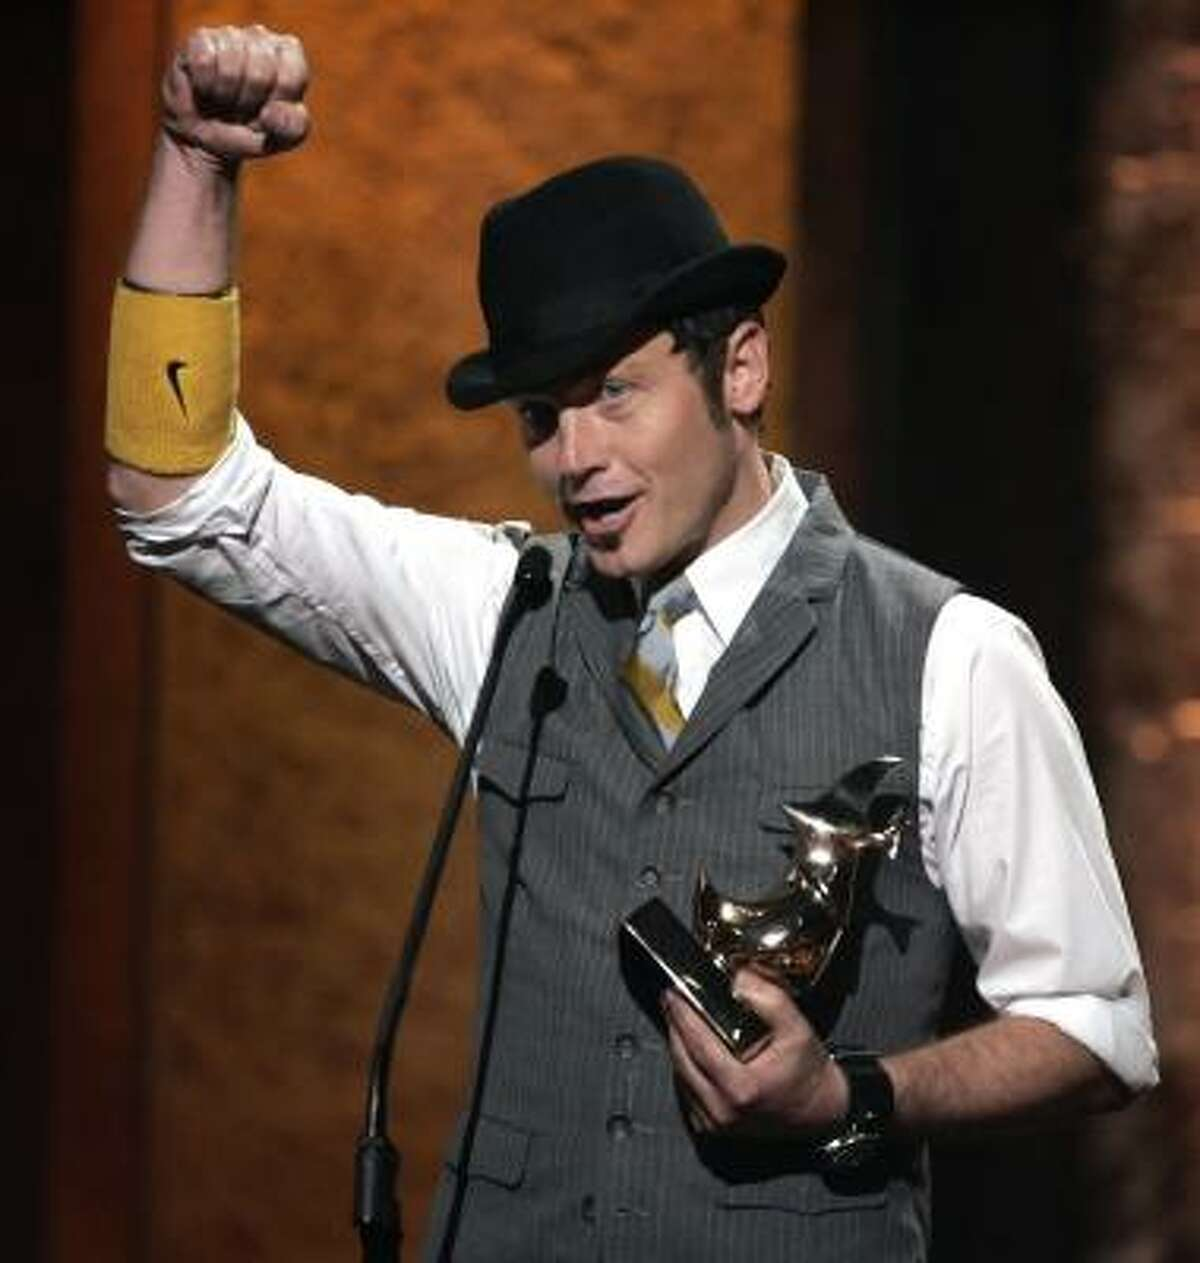 Toby Mac accepts the award for artist of the year at the Dove Awards show in Nashville, Tenn., Wednesday.